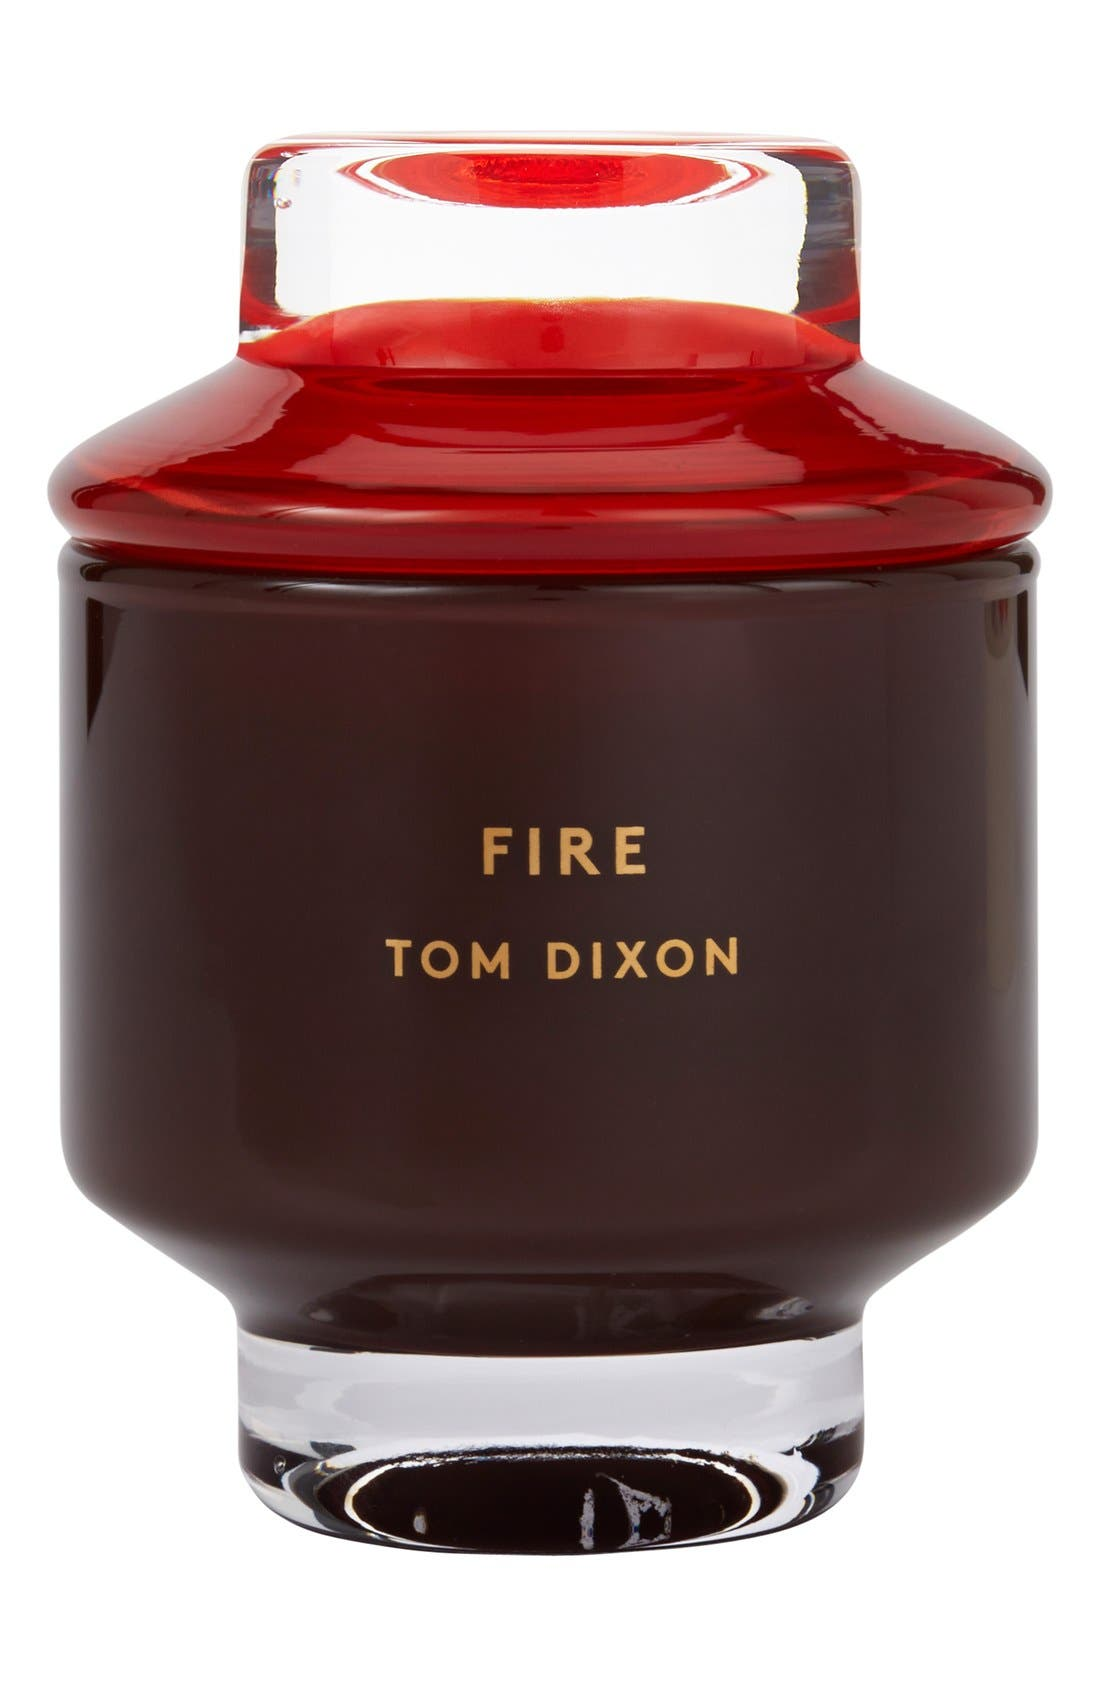 Alternate Image 1 Selected - Tom Dixon 'Fire' Candle